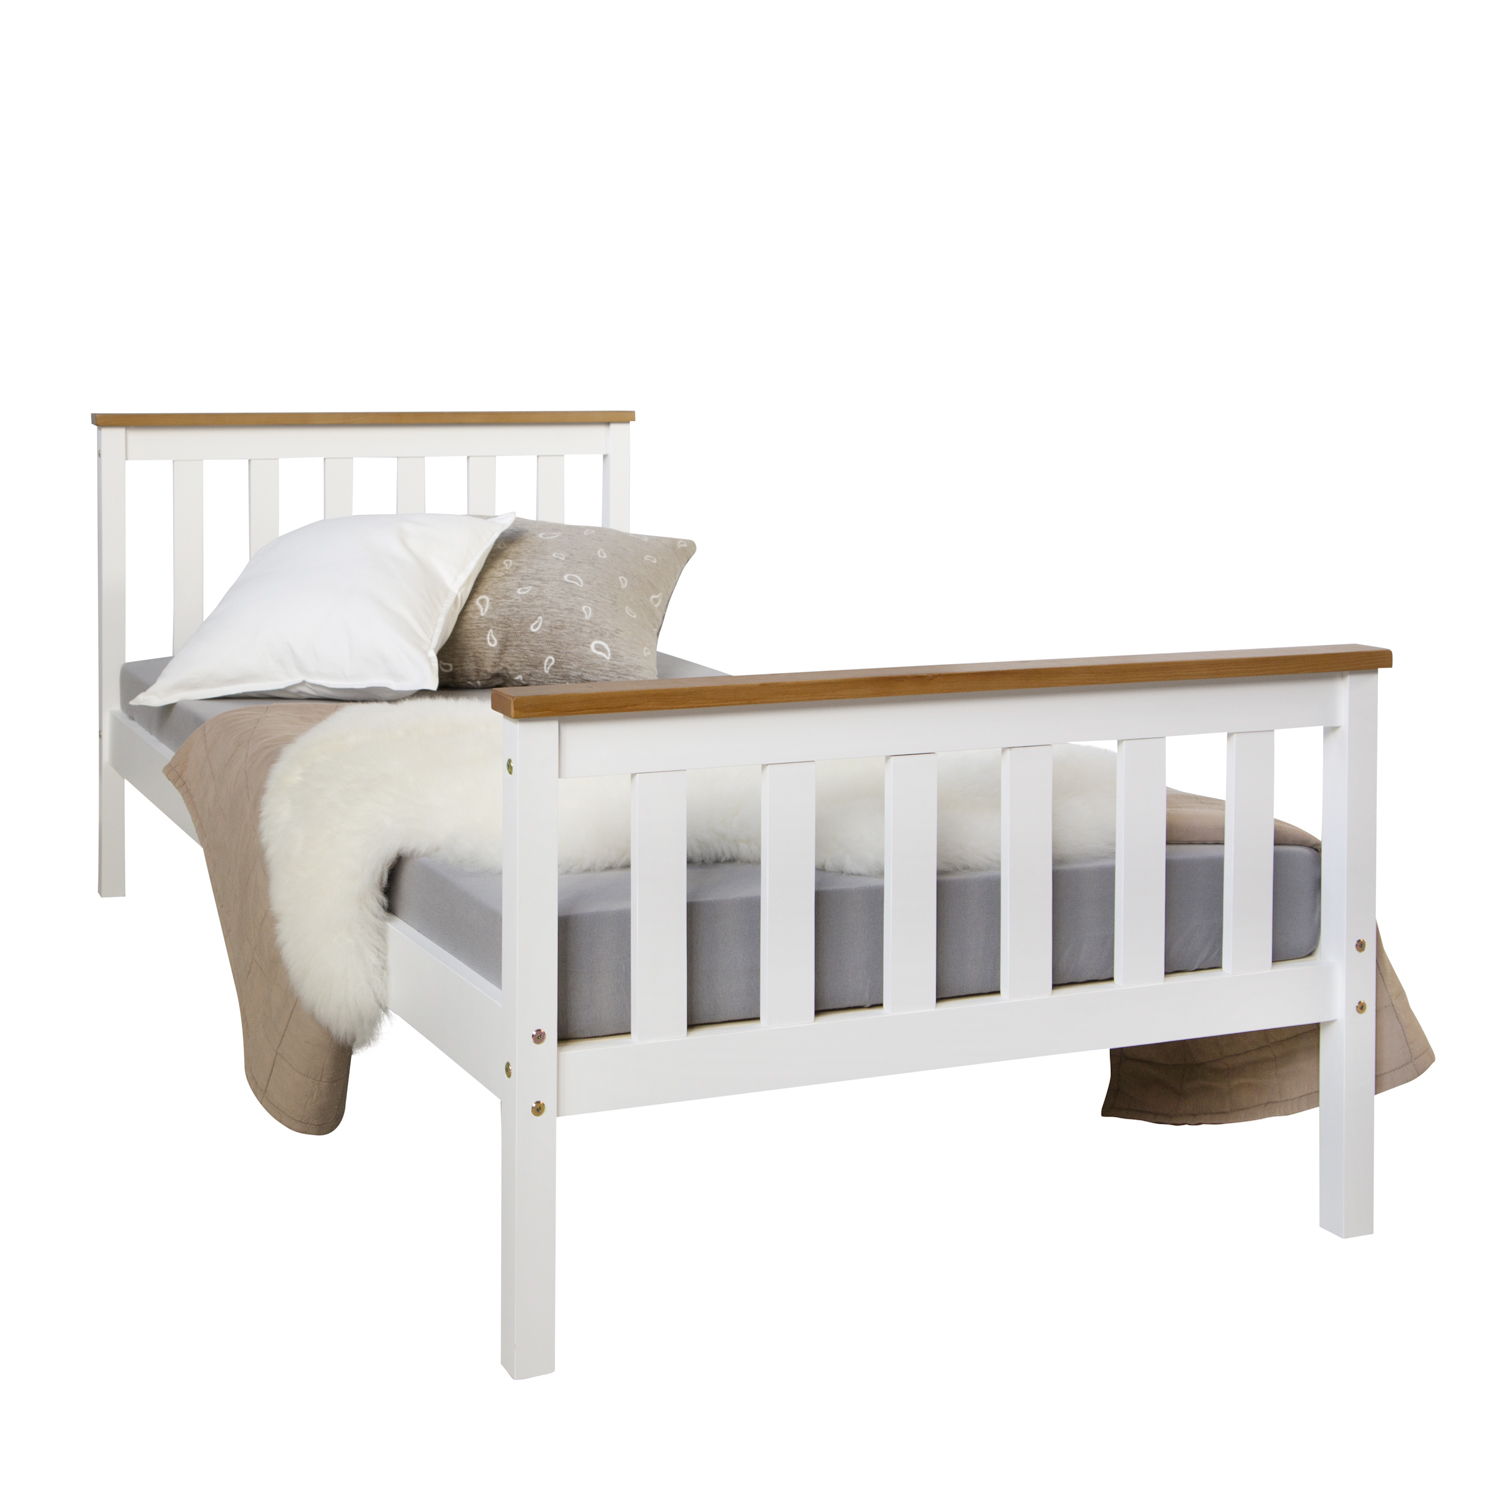 jugendbett kinderbett einzelbett bettgestell 90x200 wei bett tagesbett holzbett ebay. Black Bedroom Furniture Sets. Home Design Ideas